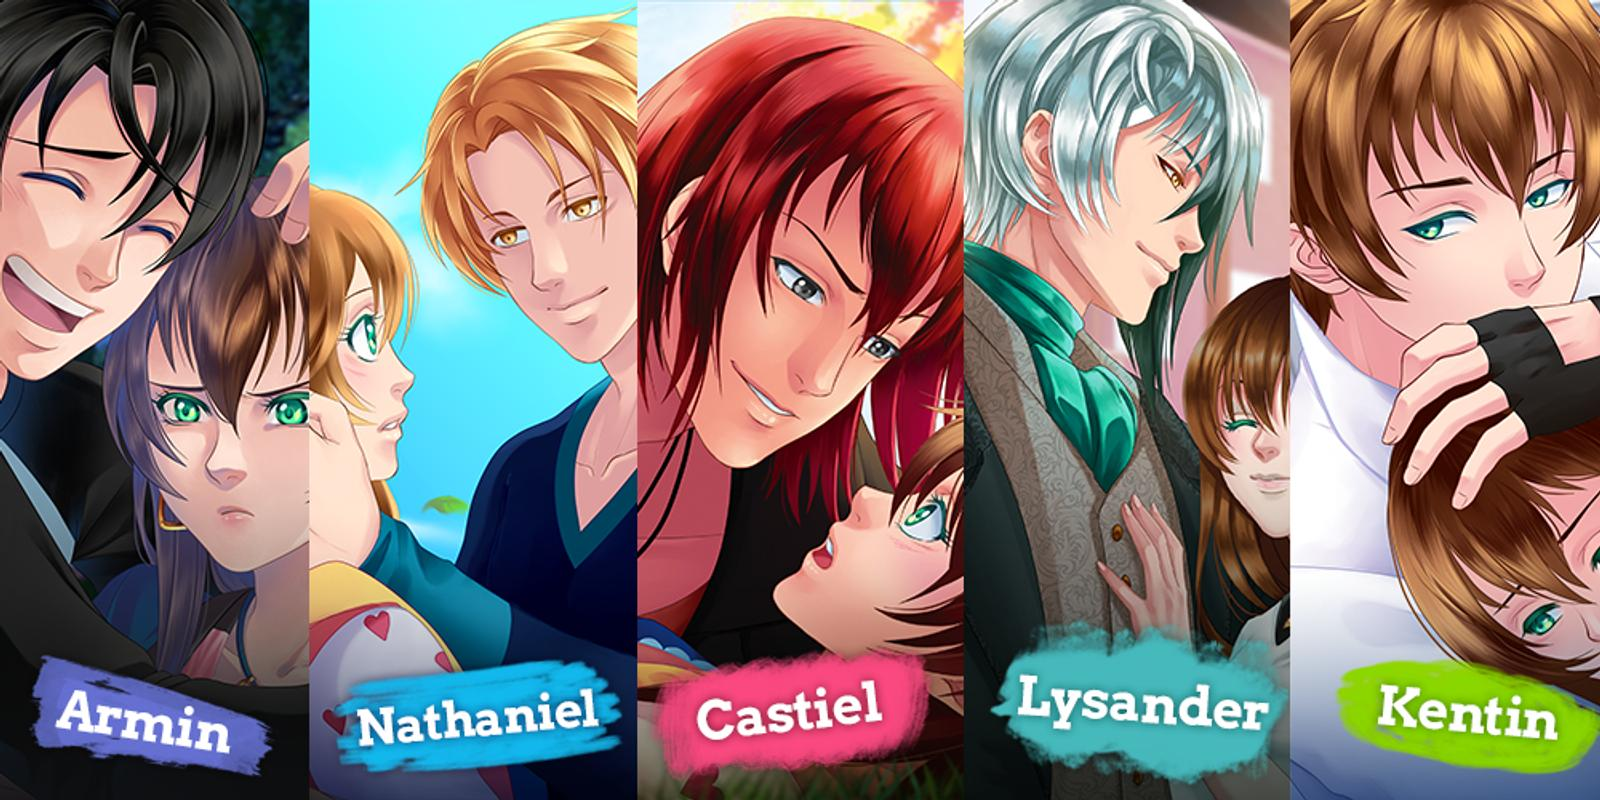 Otome Juegos En Android Kimromimy Gq